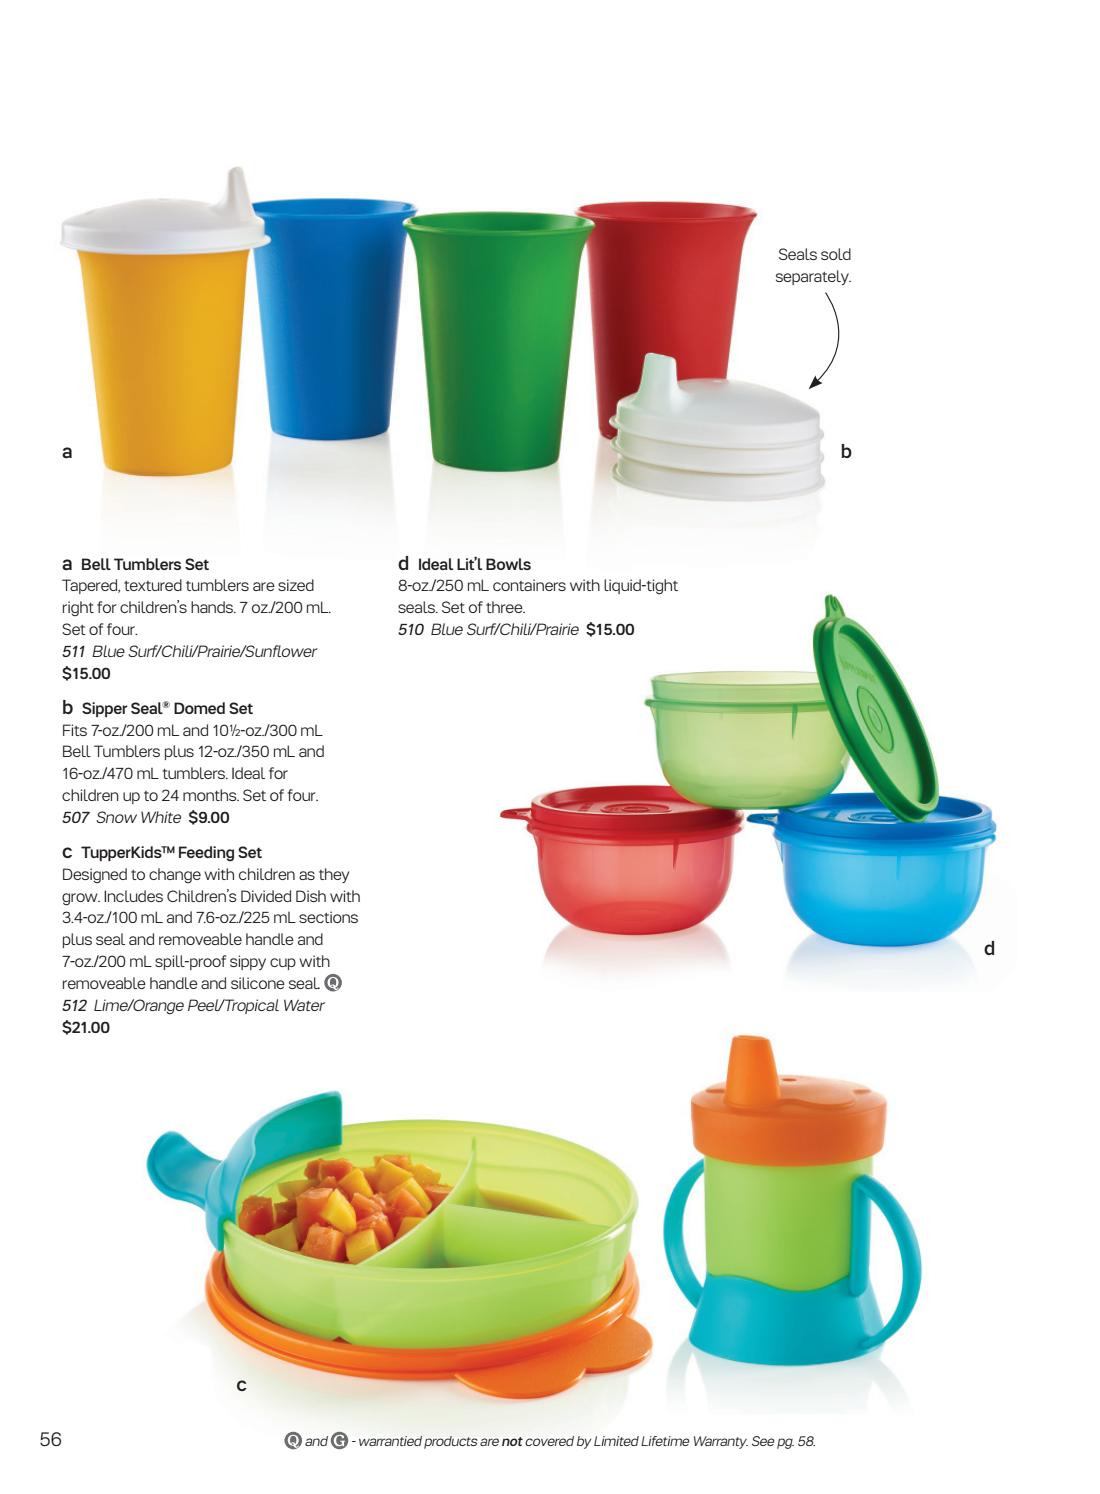 TUPPERWARE SIPPER SEAL DOMED SET